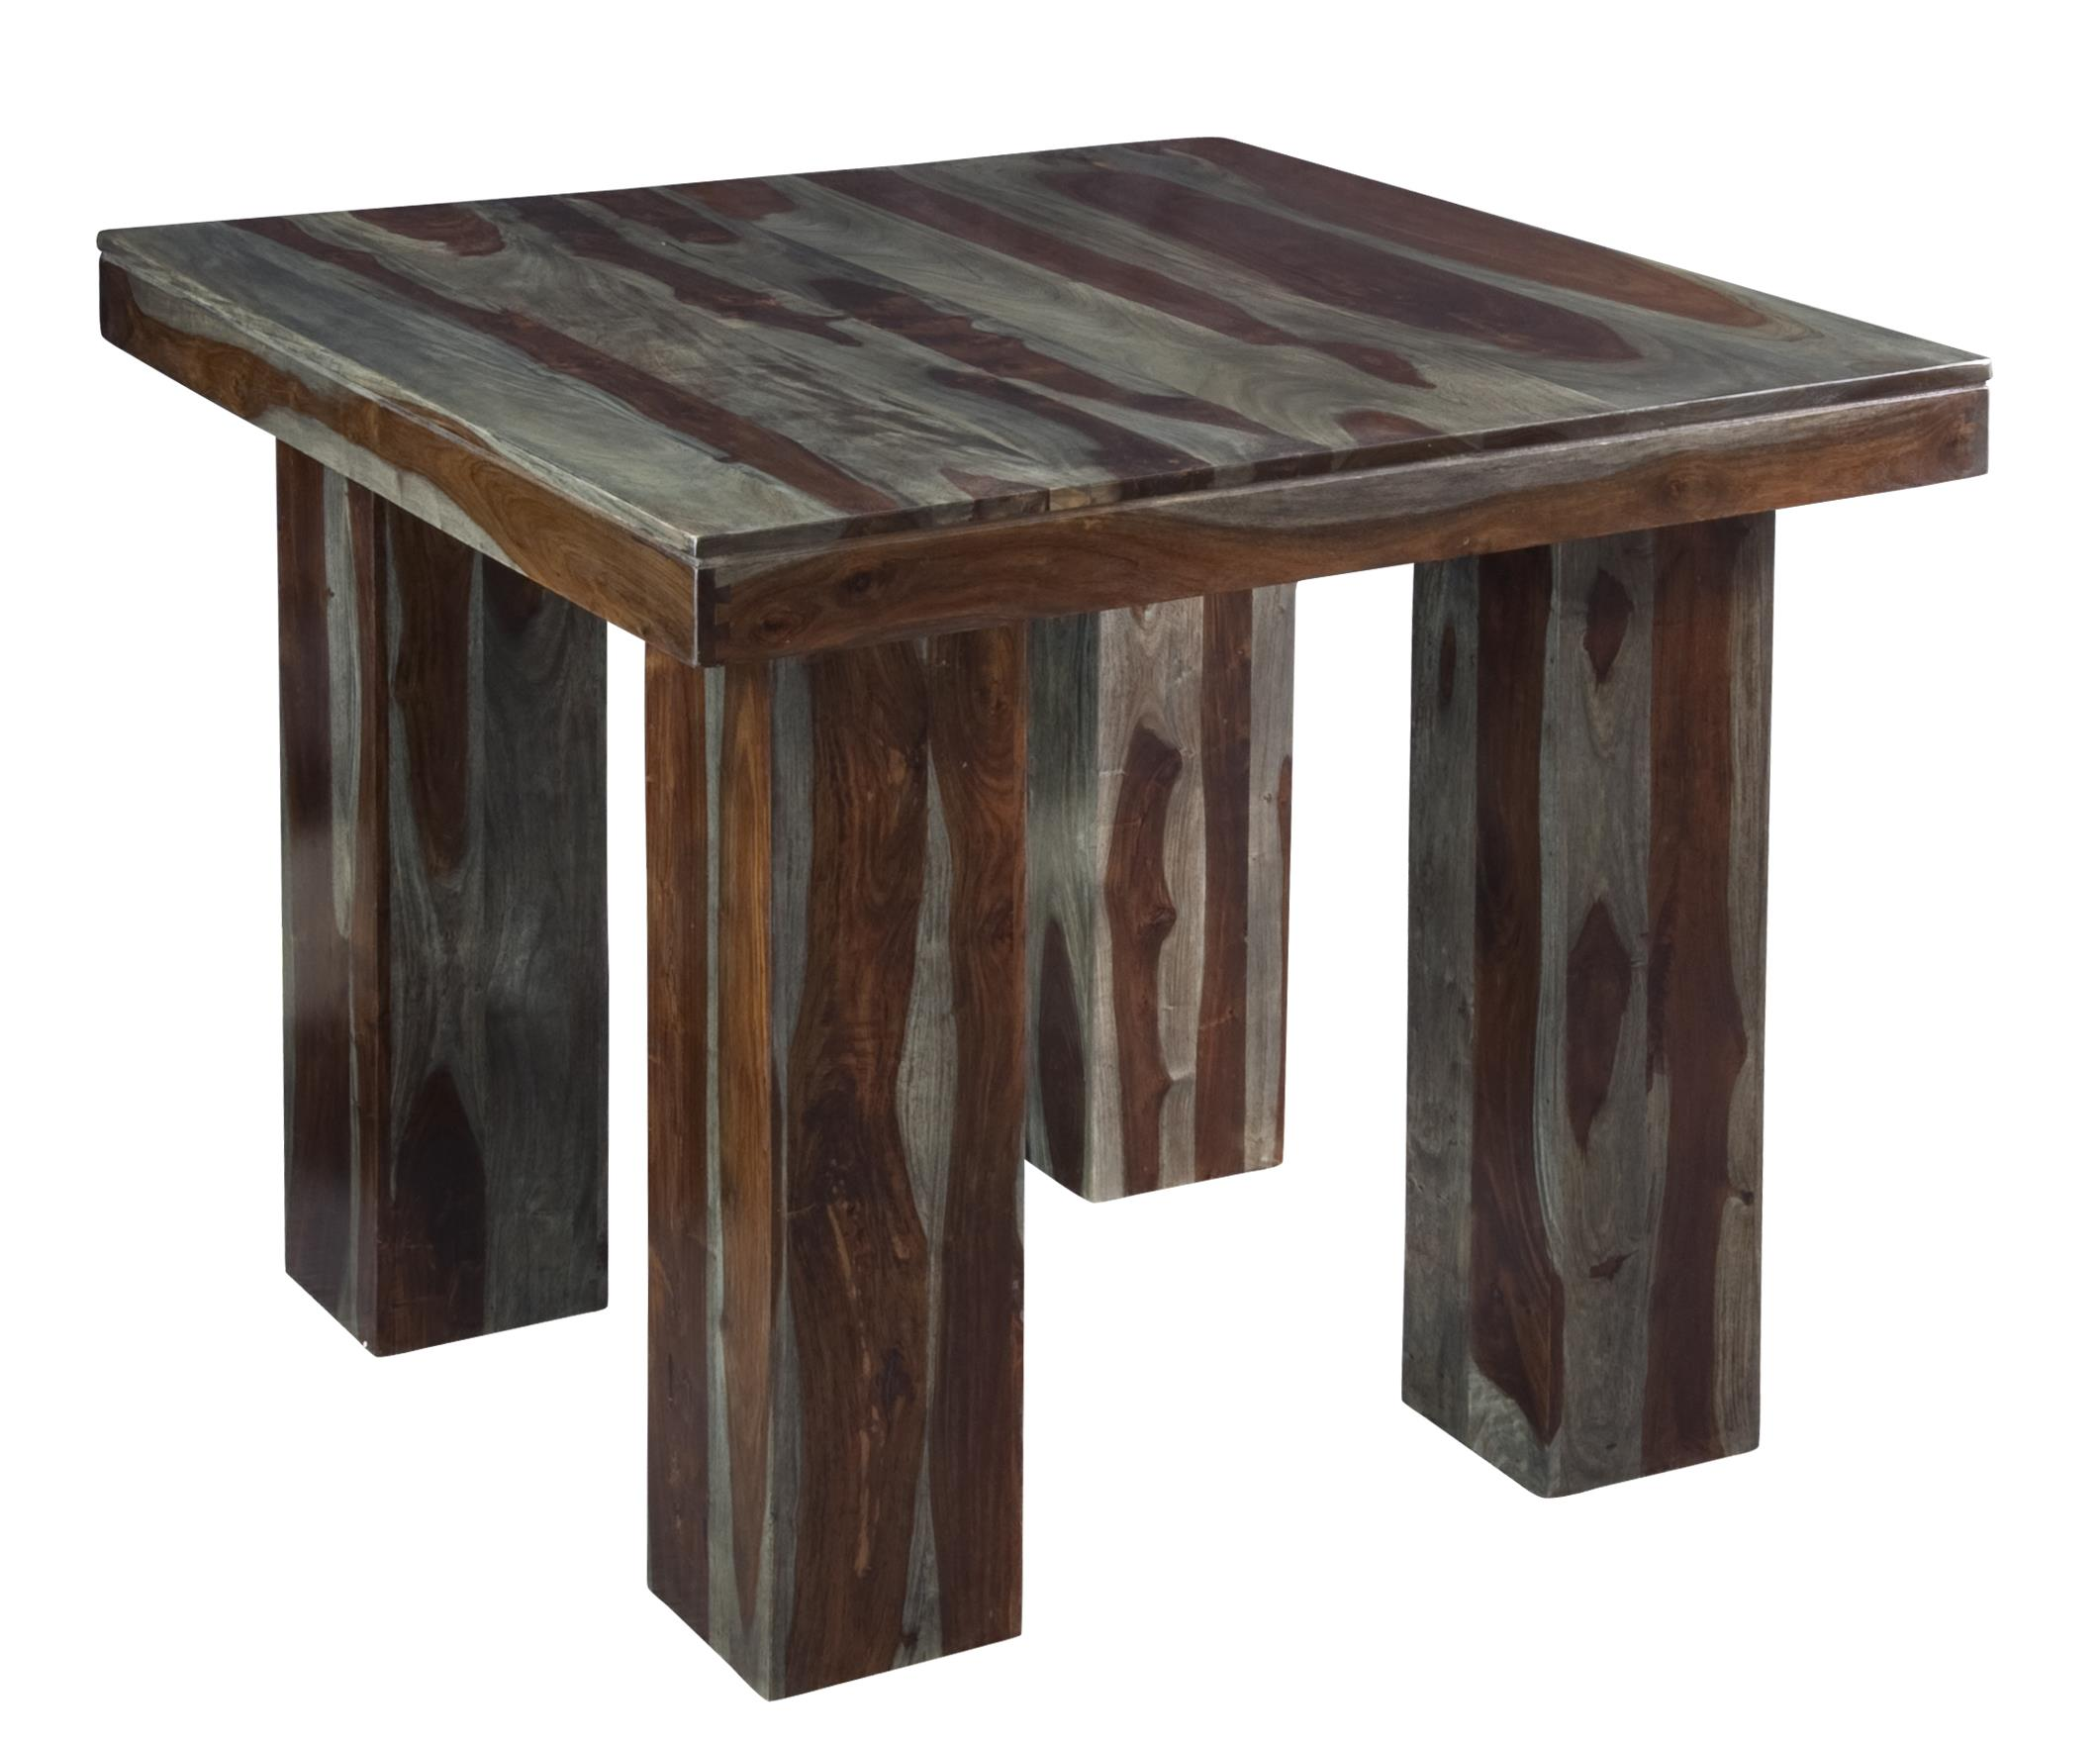 Coast to Coast Imports Coast to Coast Accents Dining Table Counter Height - Item Number: 75306